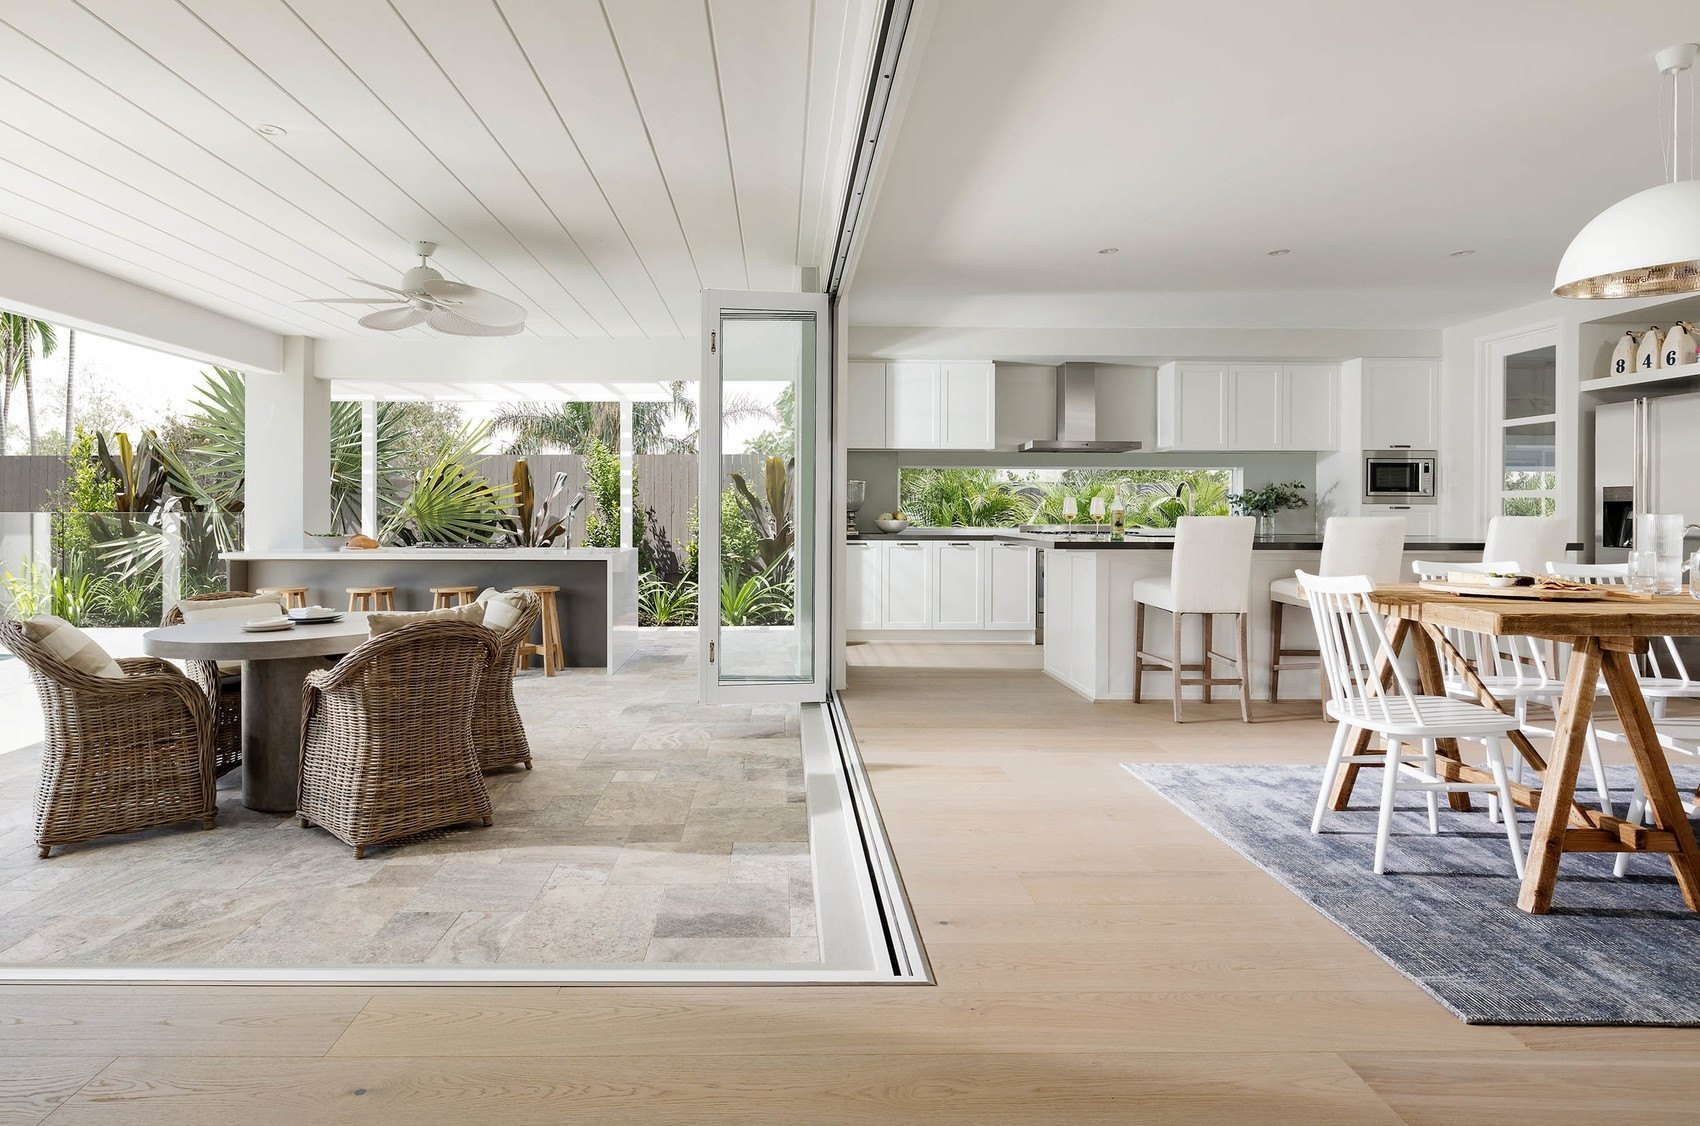 New Home Exterior Interior Design Gallery Qld Plantation